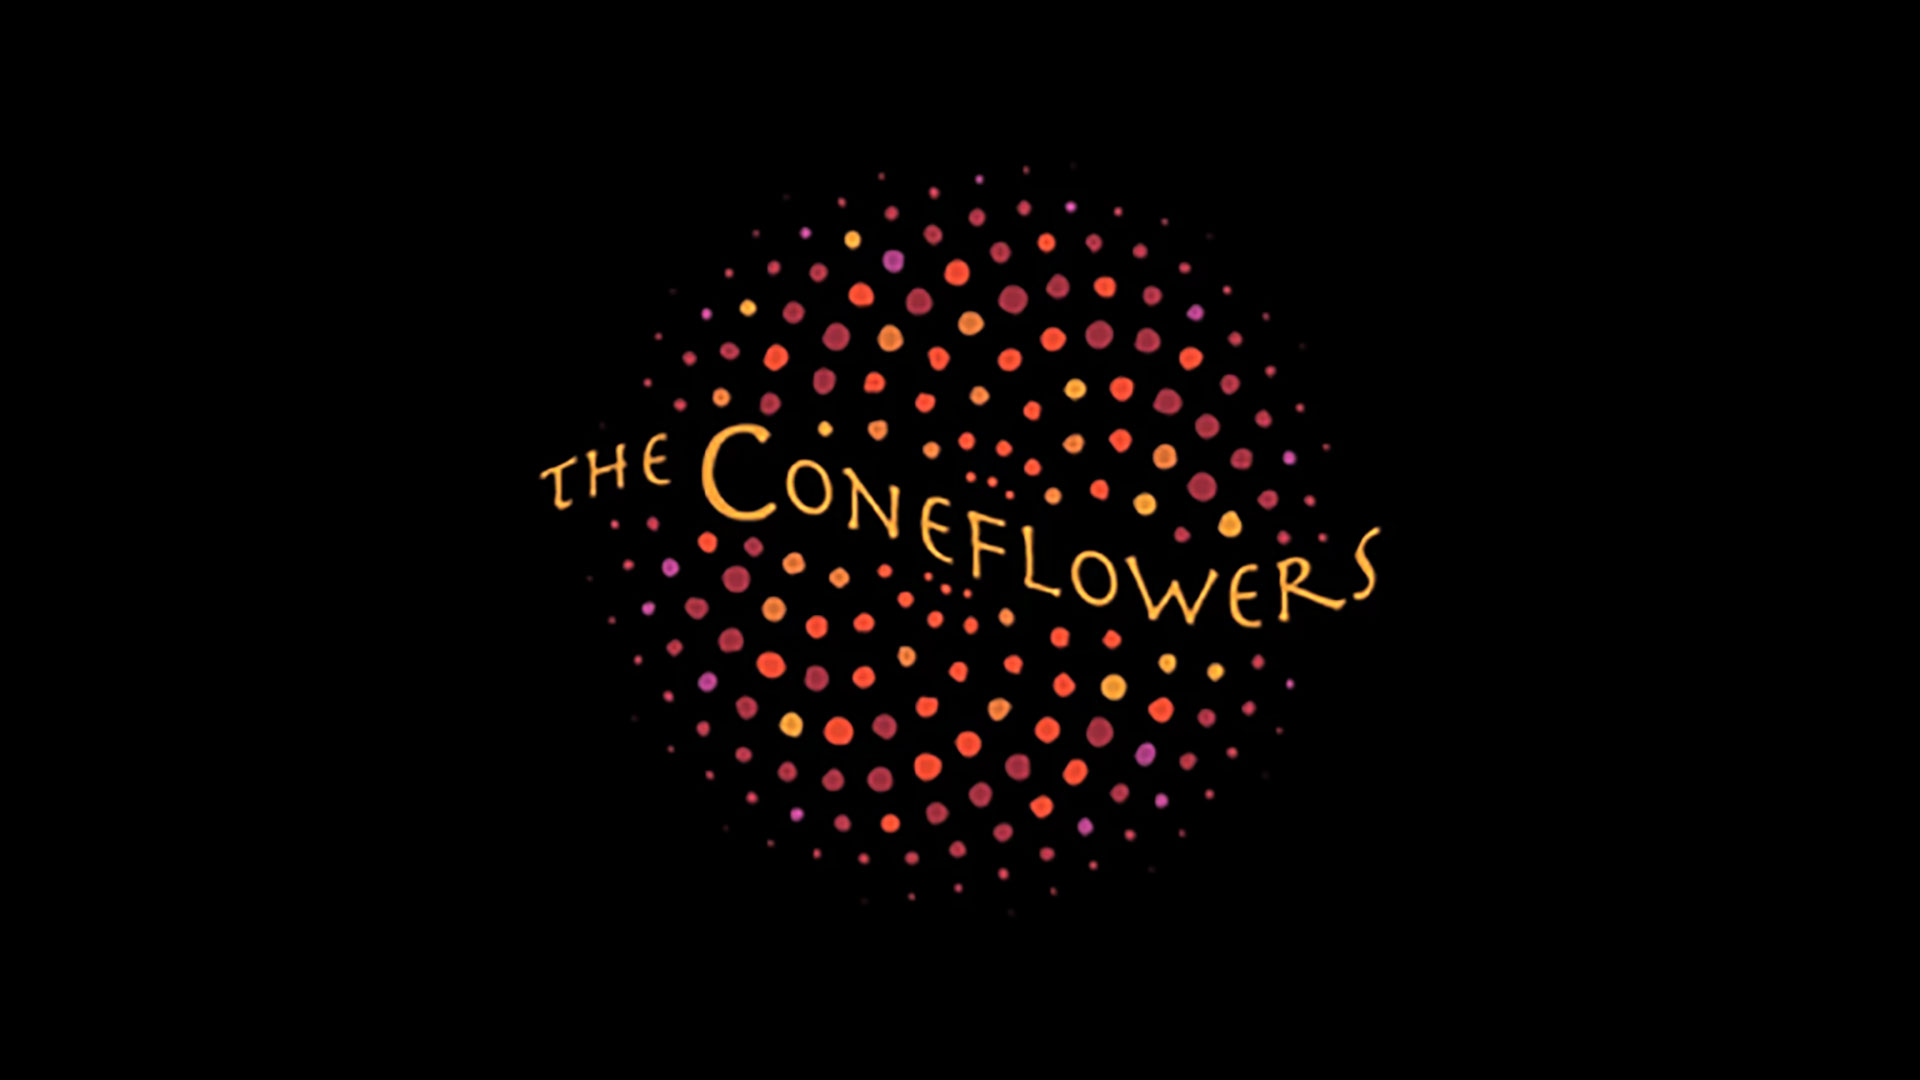 The Coneflowers logo: name on a warmly colored spiral of dots